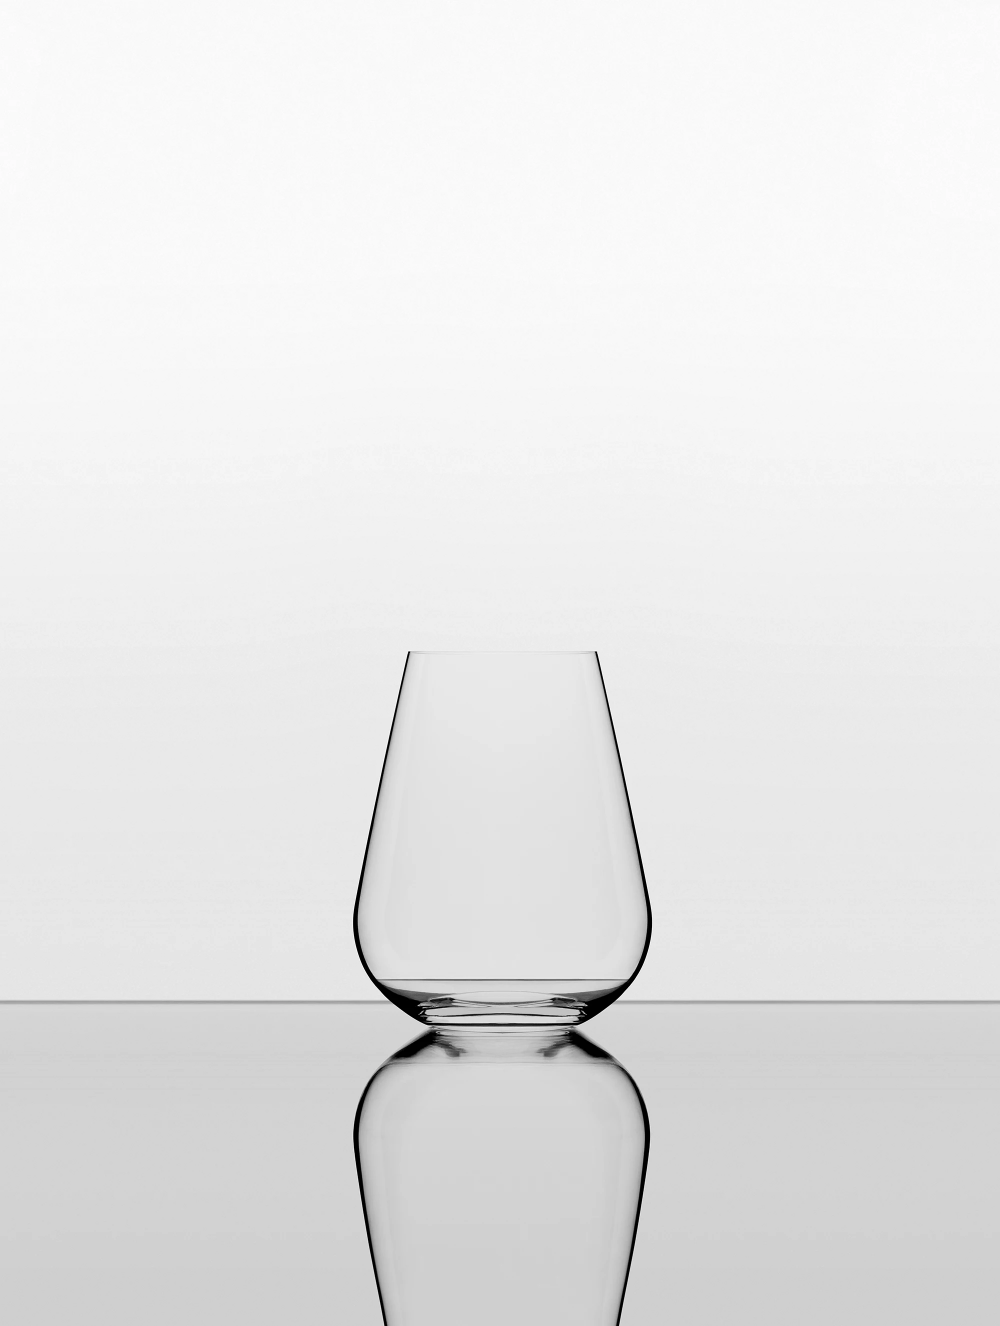 The Water Glass in 2020 | Glass, Water glass, Glass fit